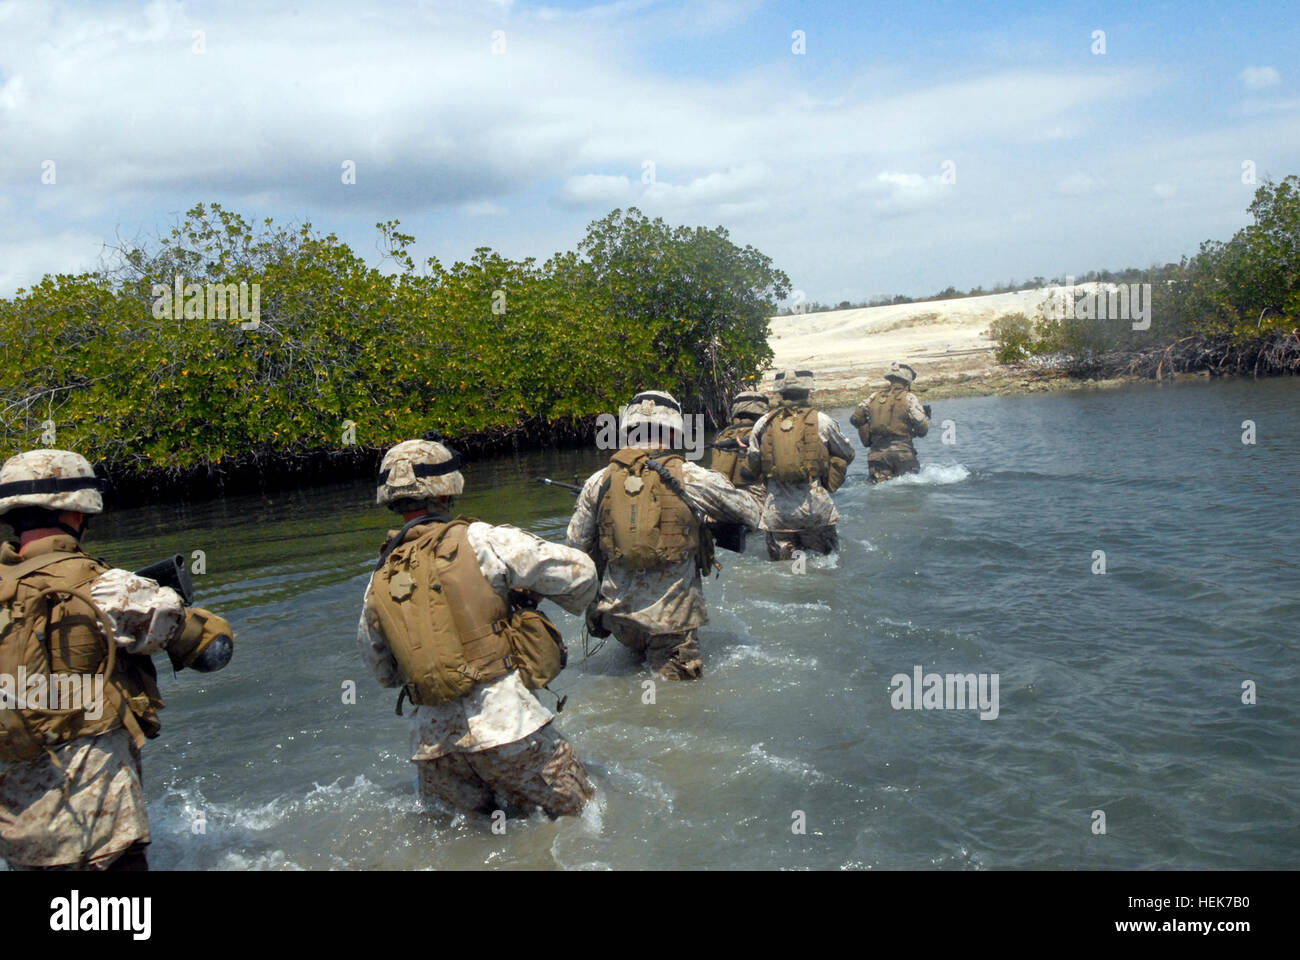 Marines wade through water after exiting a transportable port security boat at U.S. Naval Station Guantanamo Bay, Stock Photo